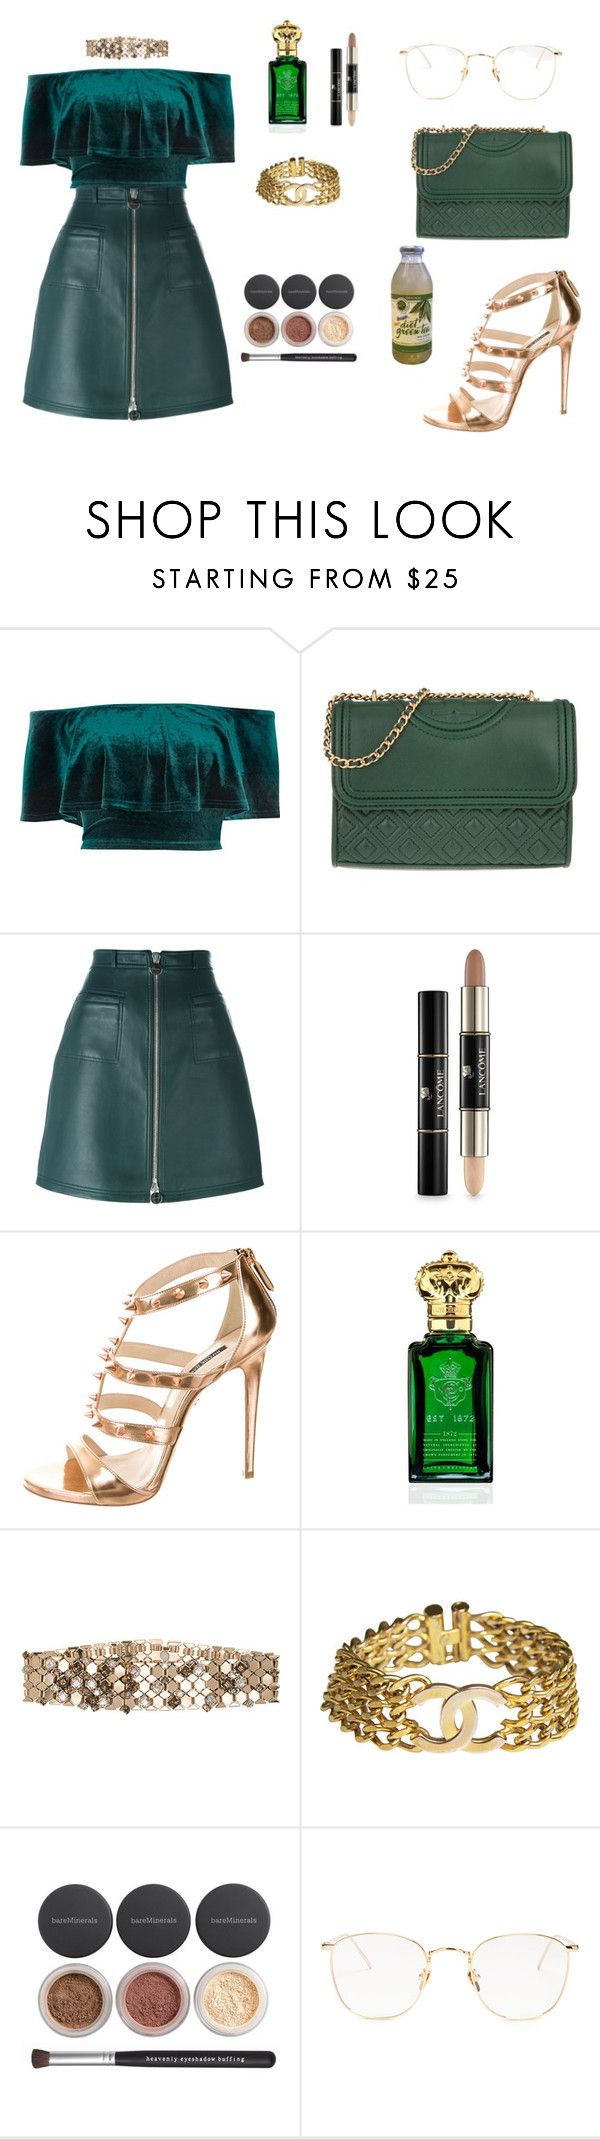 """""""JULIA"""" by twyzter ❤ liked on Polyvore featuring River Island, Tory Burch, Carven, Lancôme, Ruthie Davis, Clive Christian, Lanvin, Chanel, Bare Escentuals and Linda Farrow"""